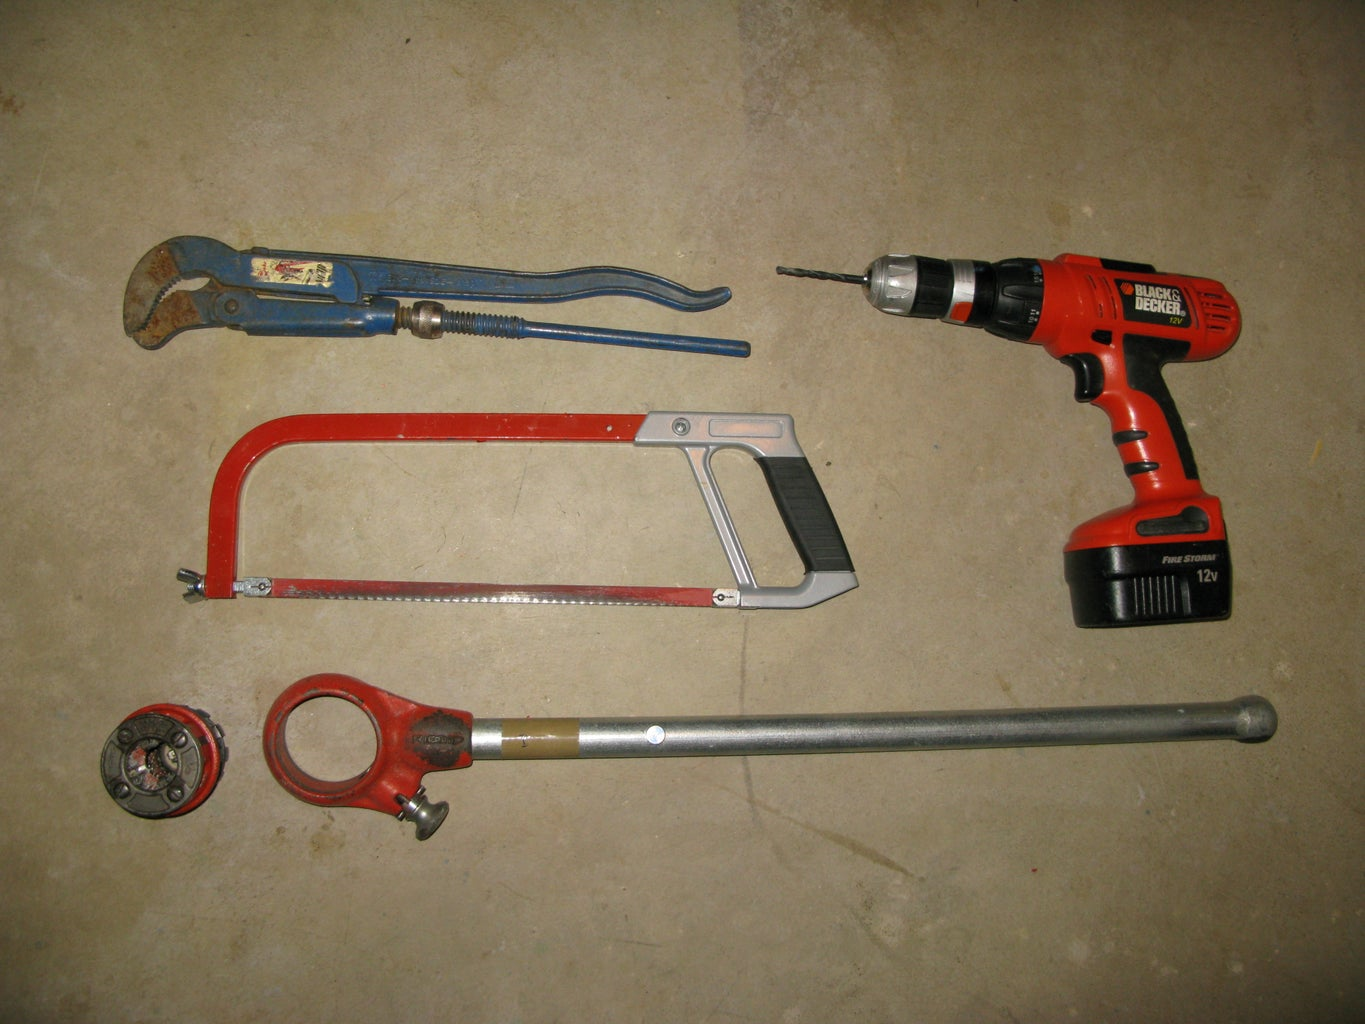 Needed Materials and Tools